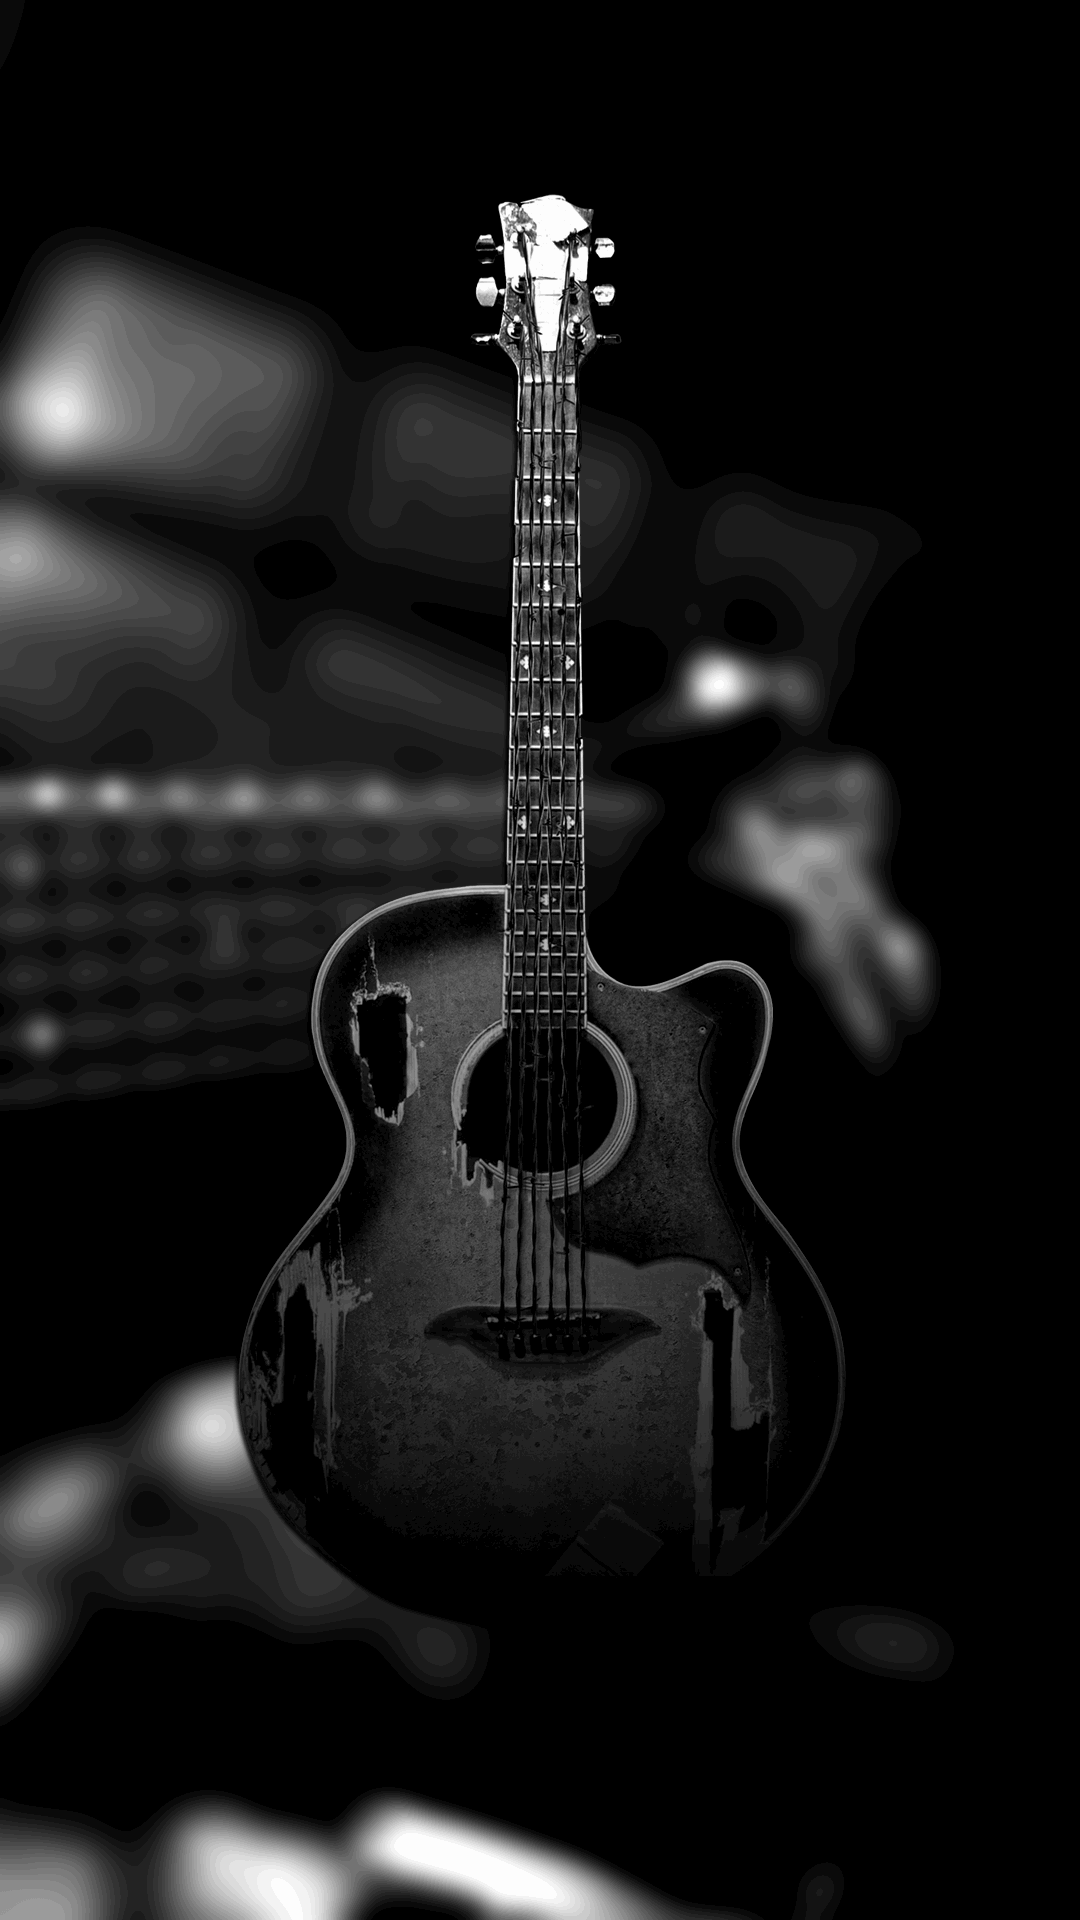 Guitar Wallpaper 4k Iphone Trick Di 2020 Iphone